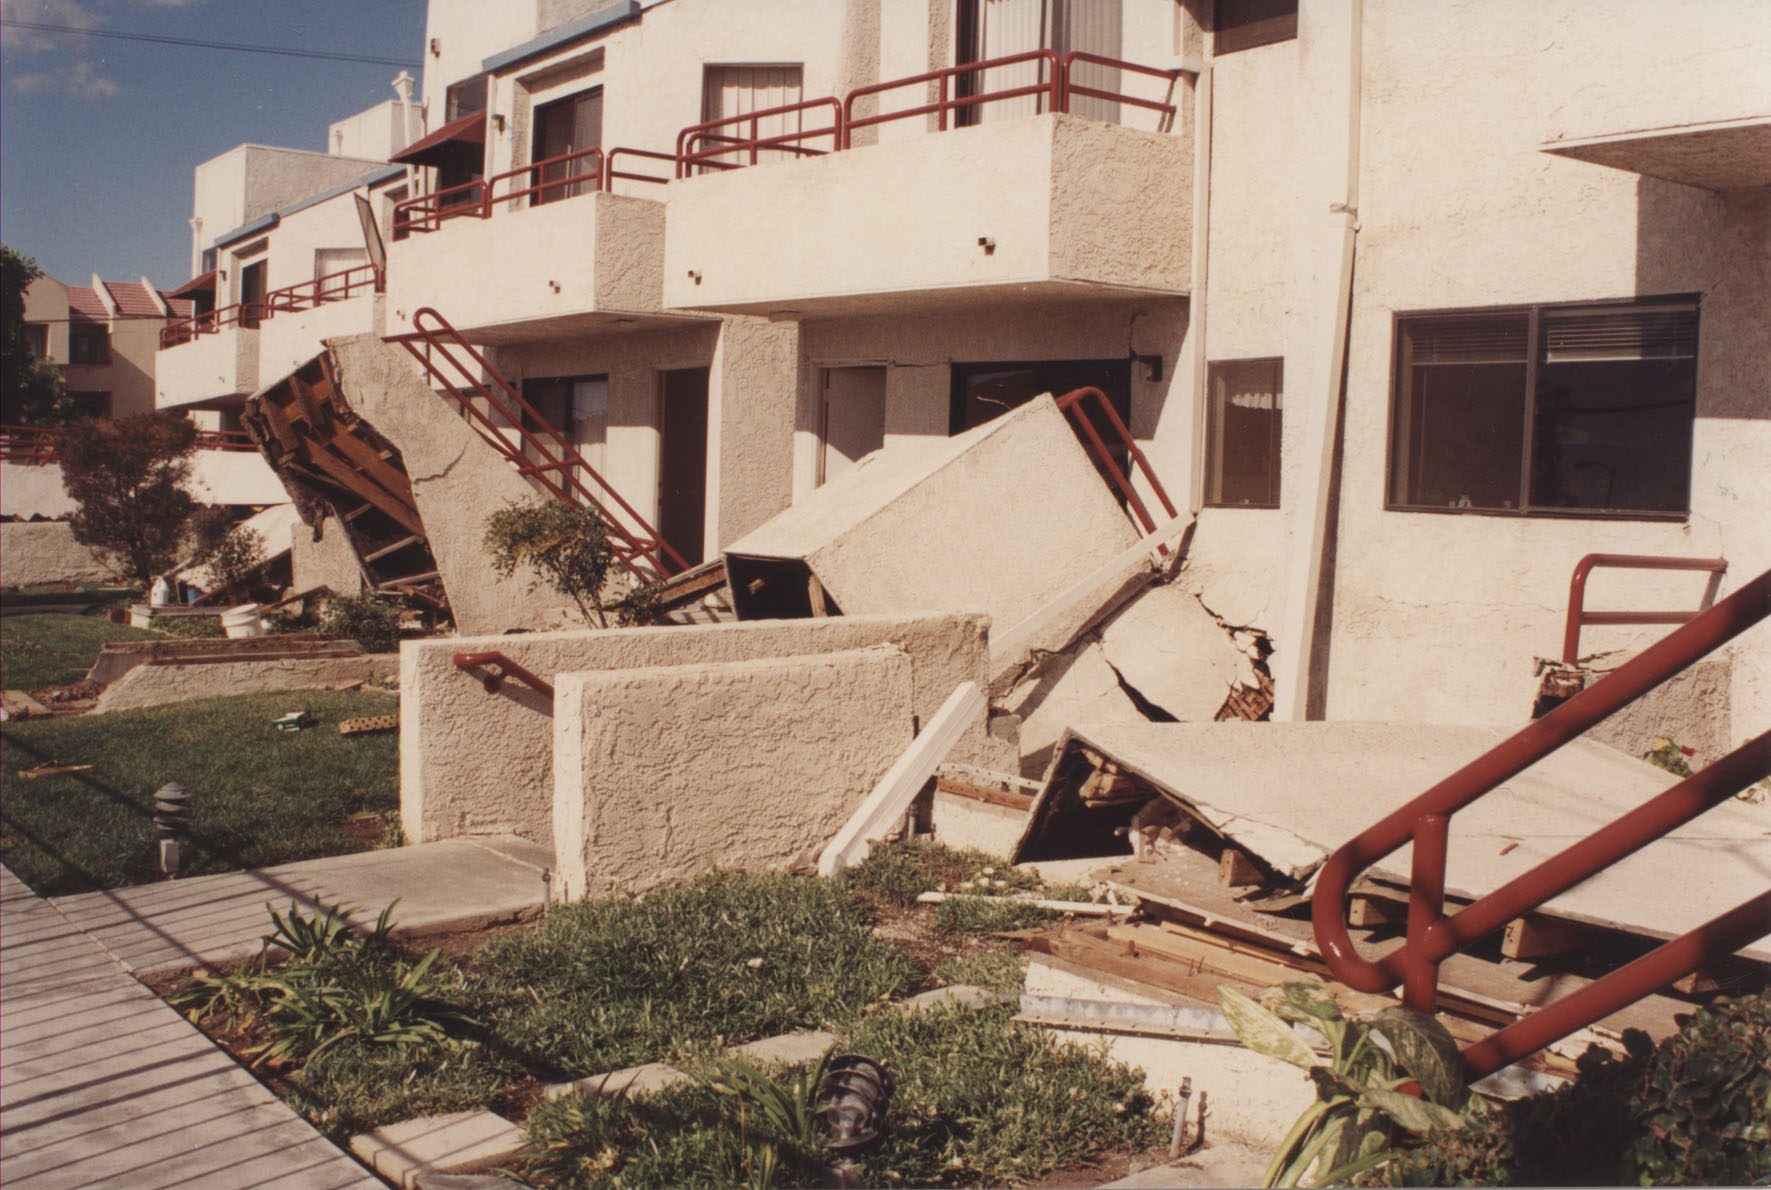 Color printing csun - Dormitory Staircases At Csun Immediately After The Earthquake 1994